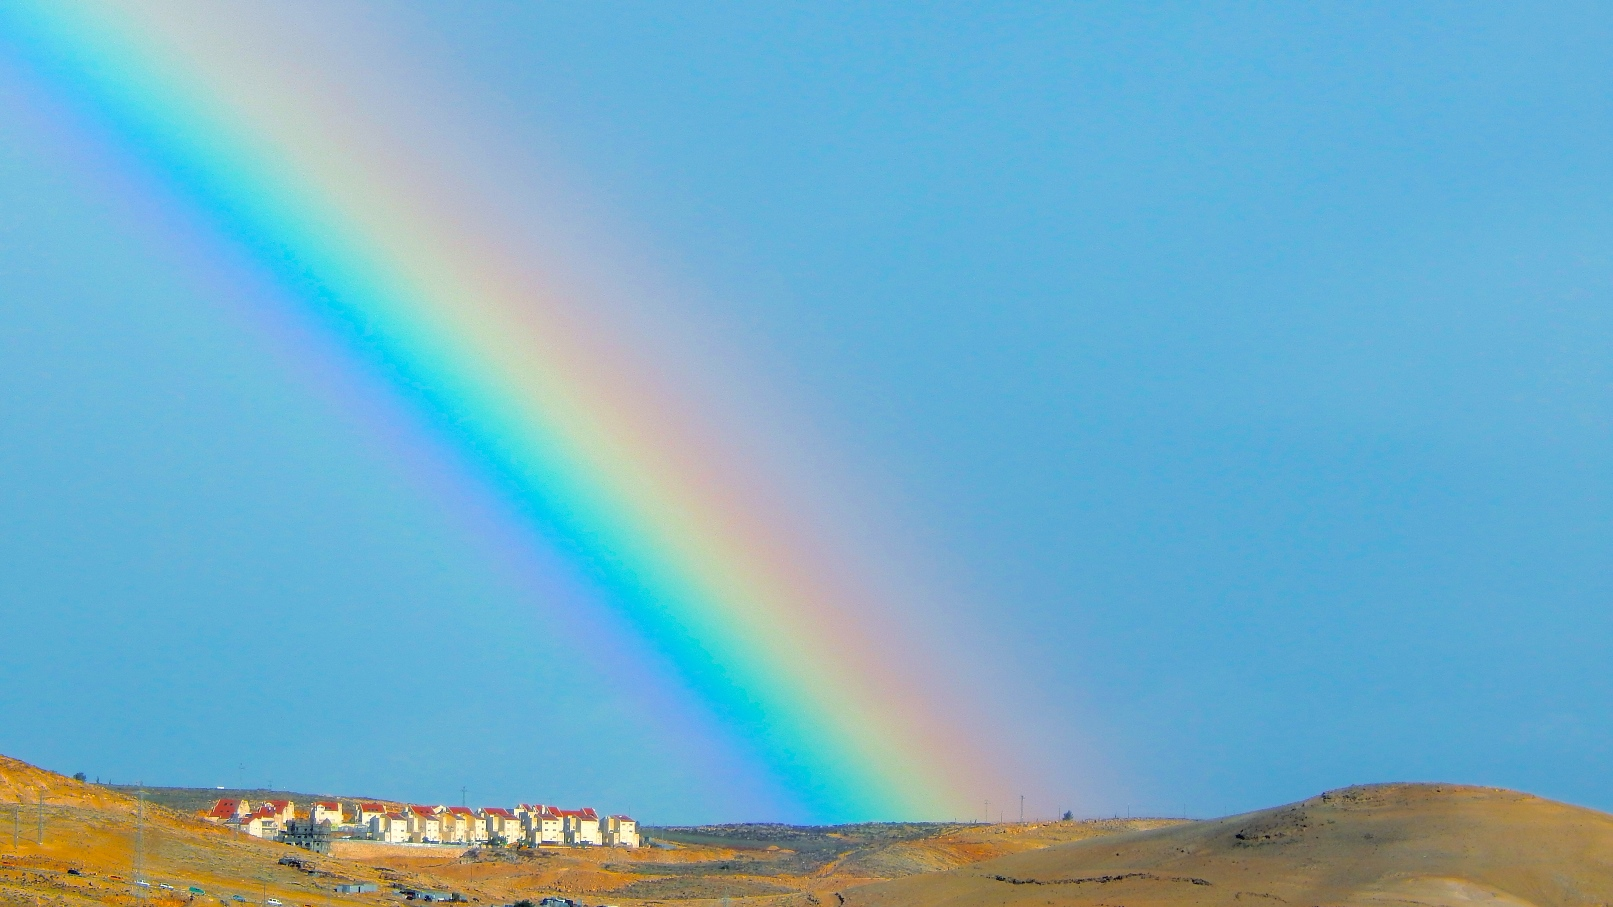 A rainbow arches over Kfar Adumim in the Judean Desert. Photo by Daniel Santacruz